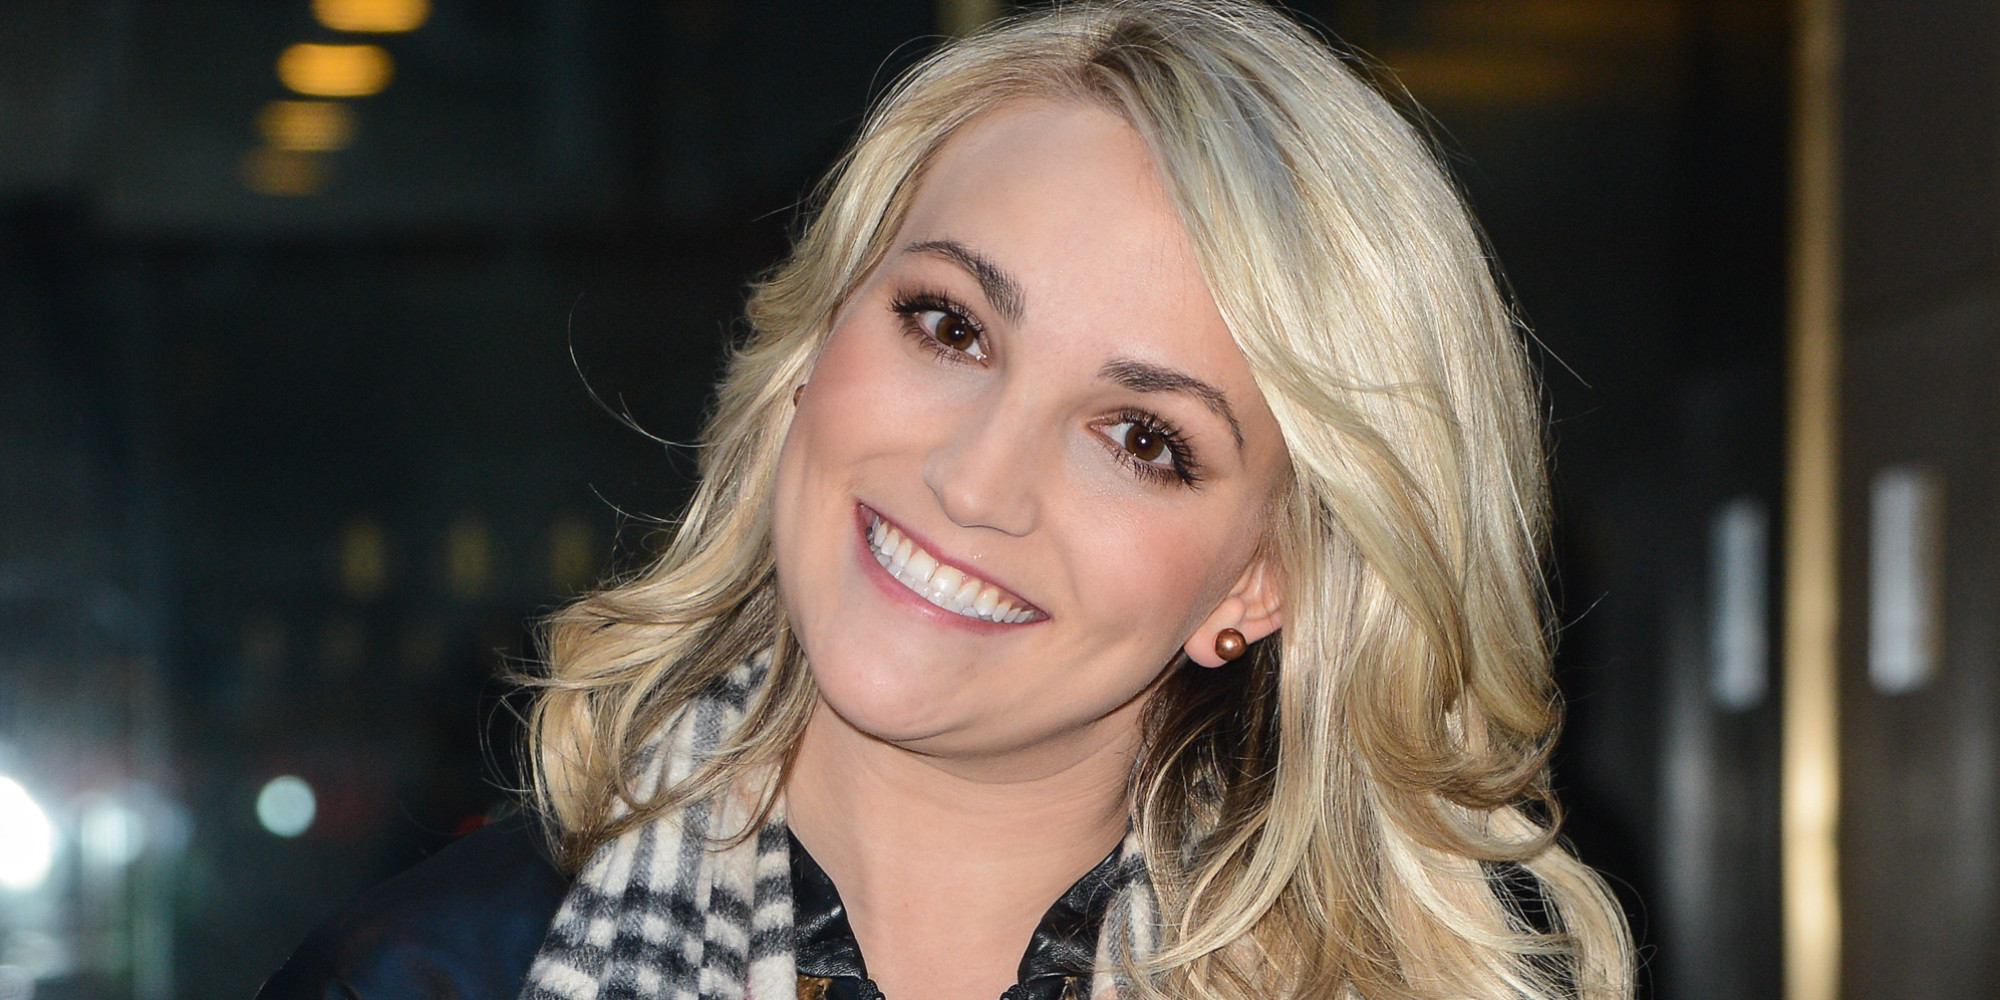 Jamie Lynn Spears Hairstyles And Haircut With Hair Color Photos 11